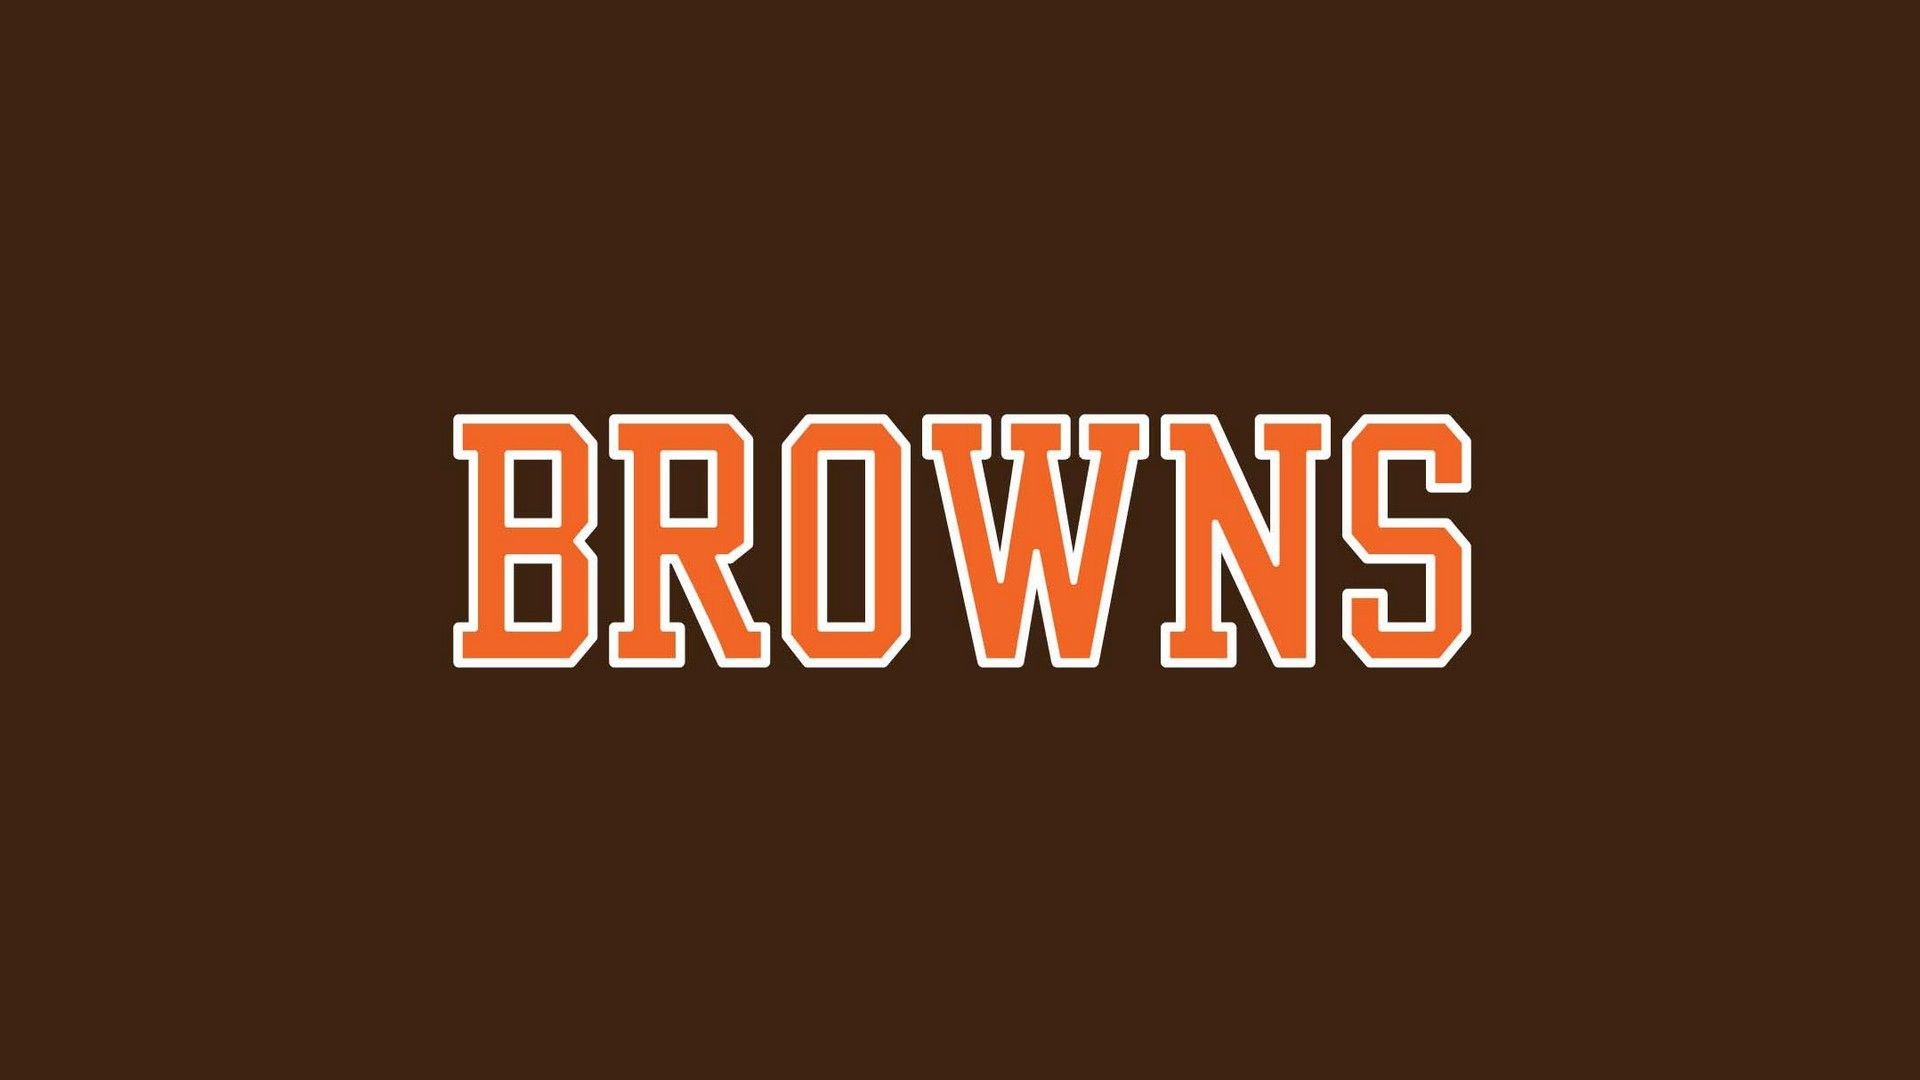 Hd Cleveland Browns Wallpapers Cleveland Browns Wallpaper